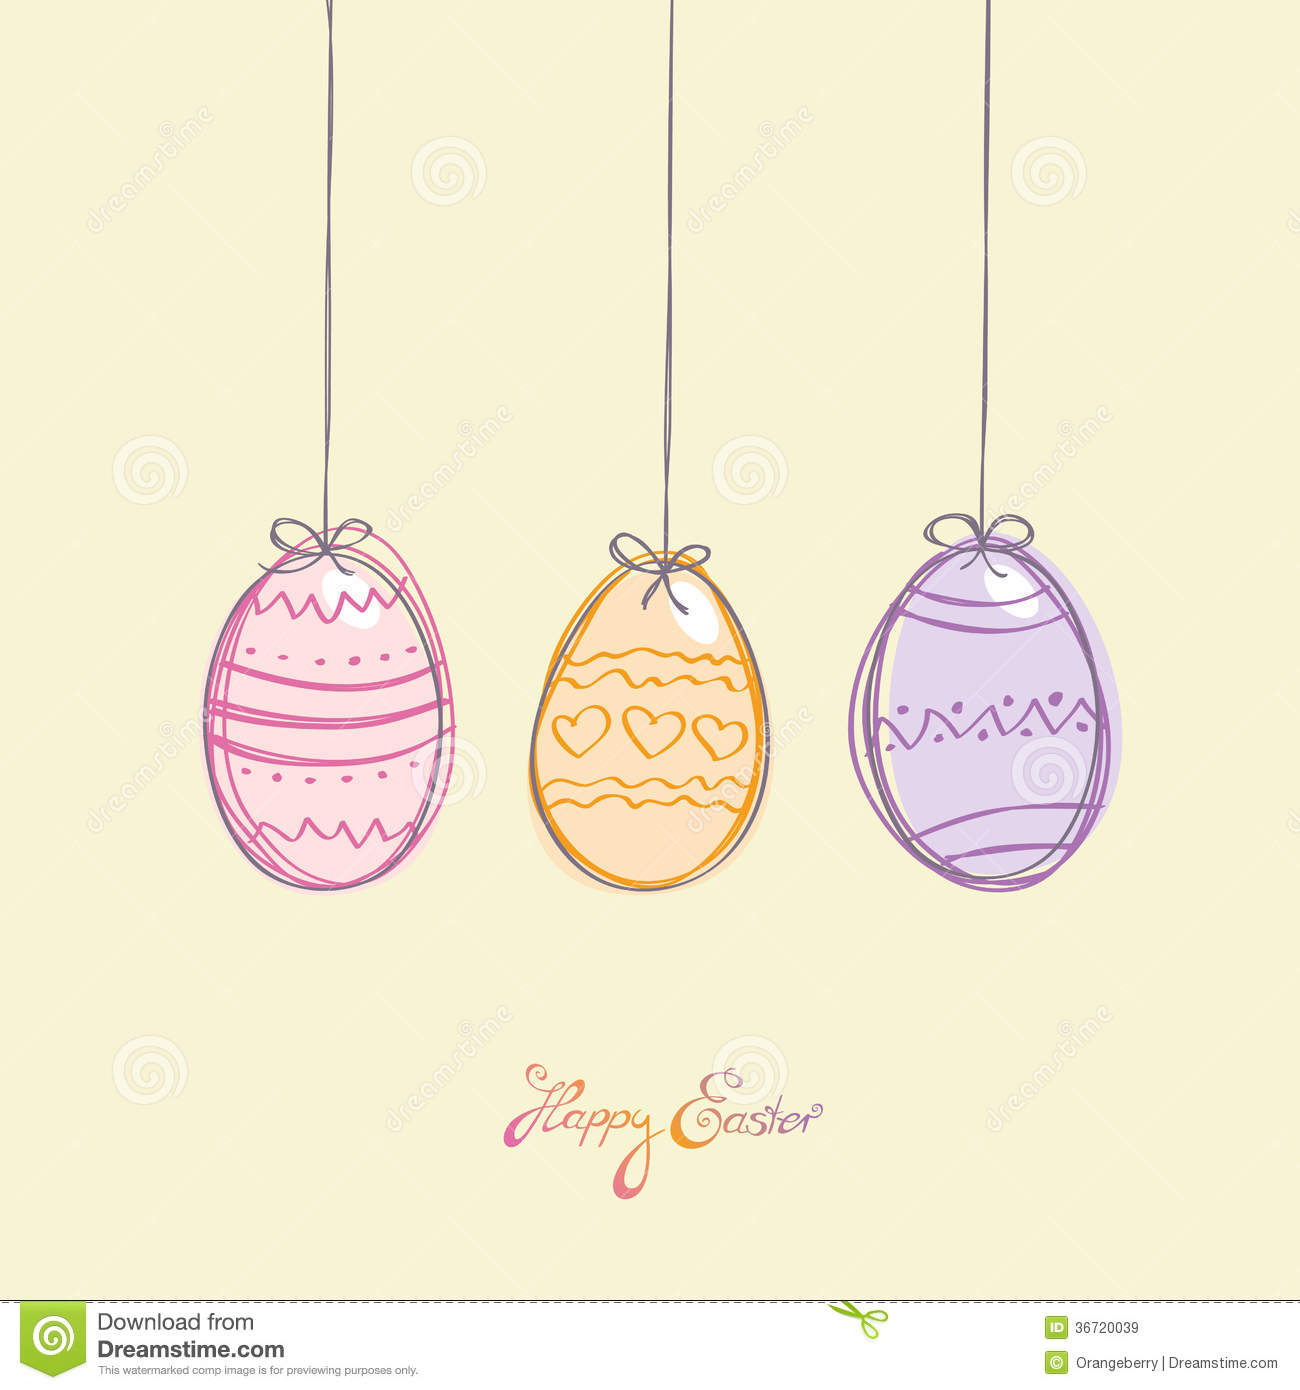 Easter Card Royalty Free Stock Images - Image: 36720039